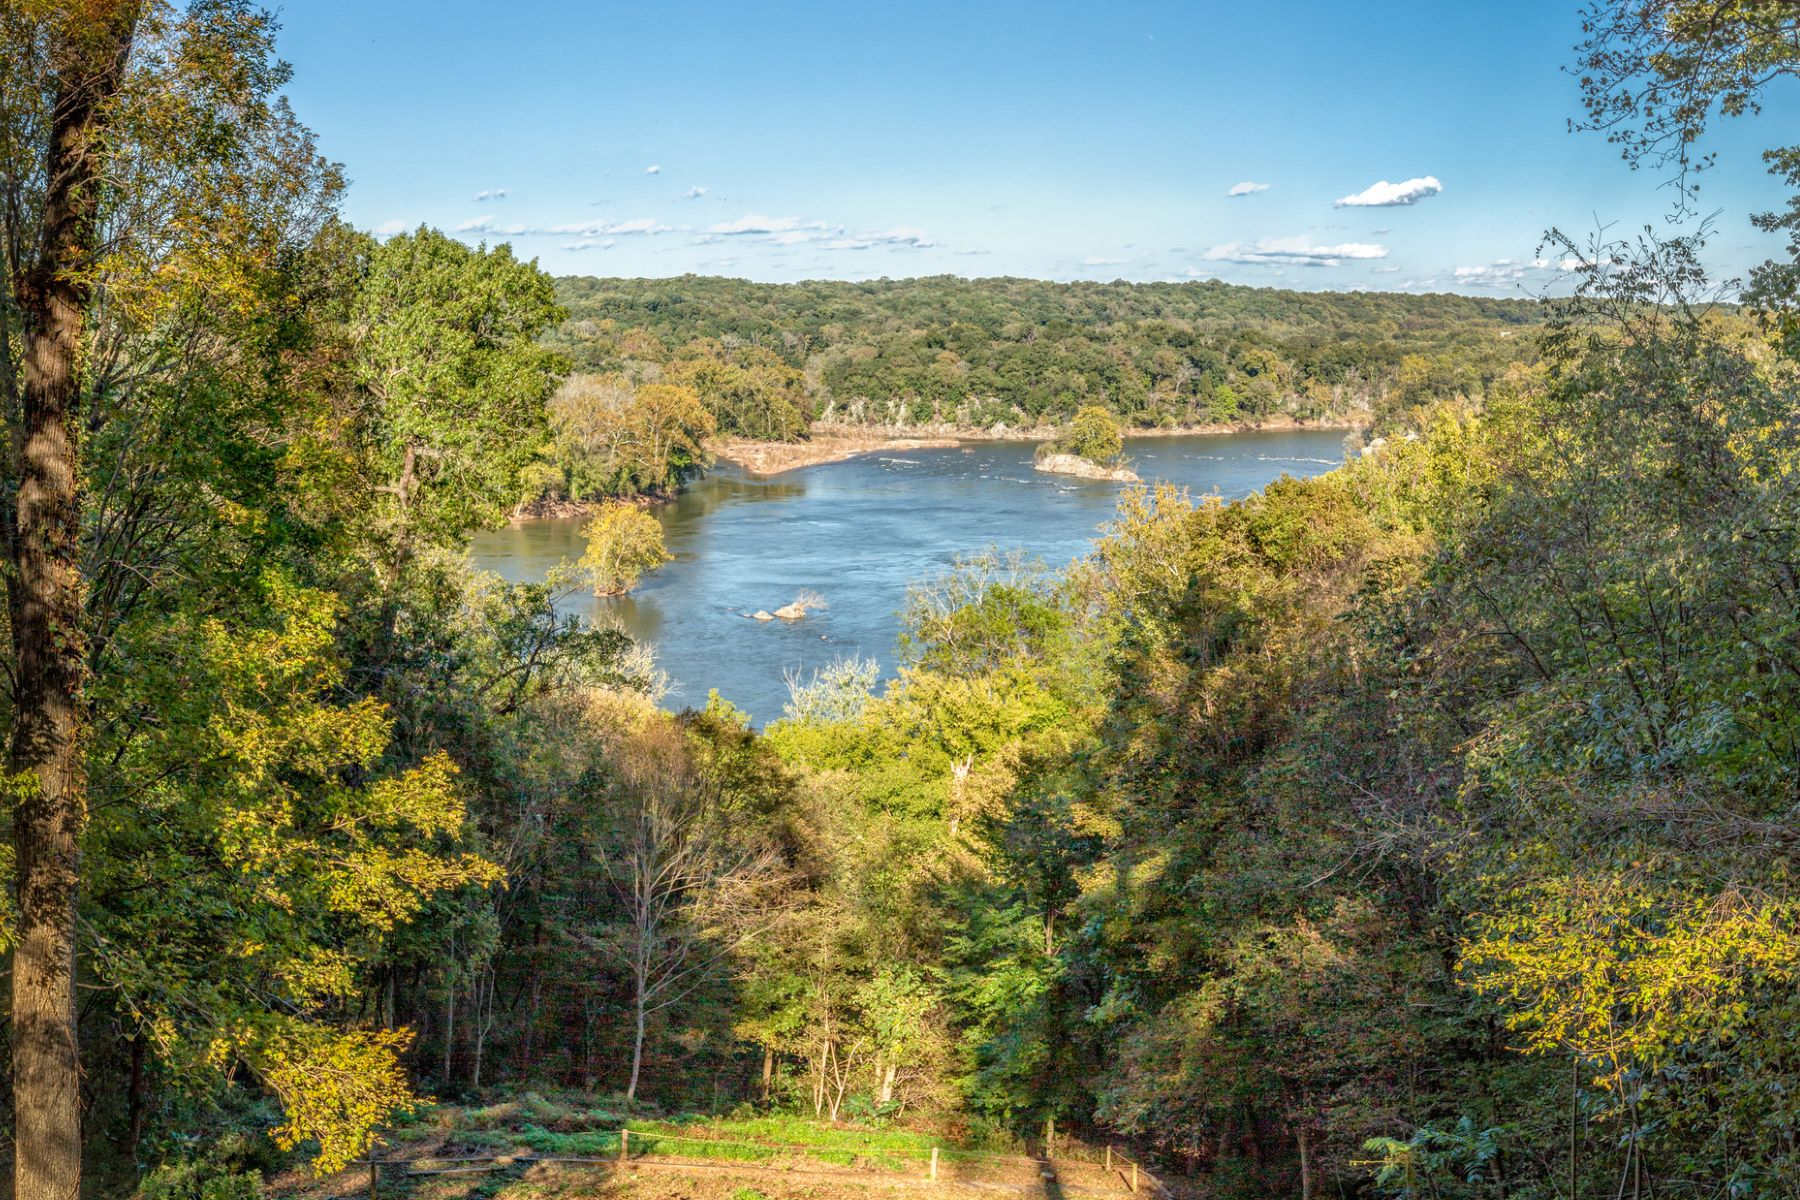 Property for Sale at 701 Bulls Neck Rd 701 Bulls Neck Rd McLean, Virginia 22102 United States